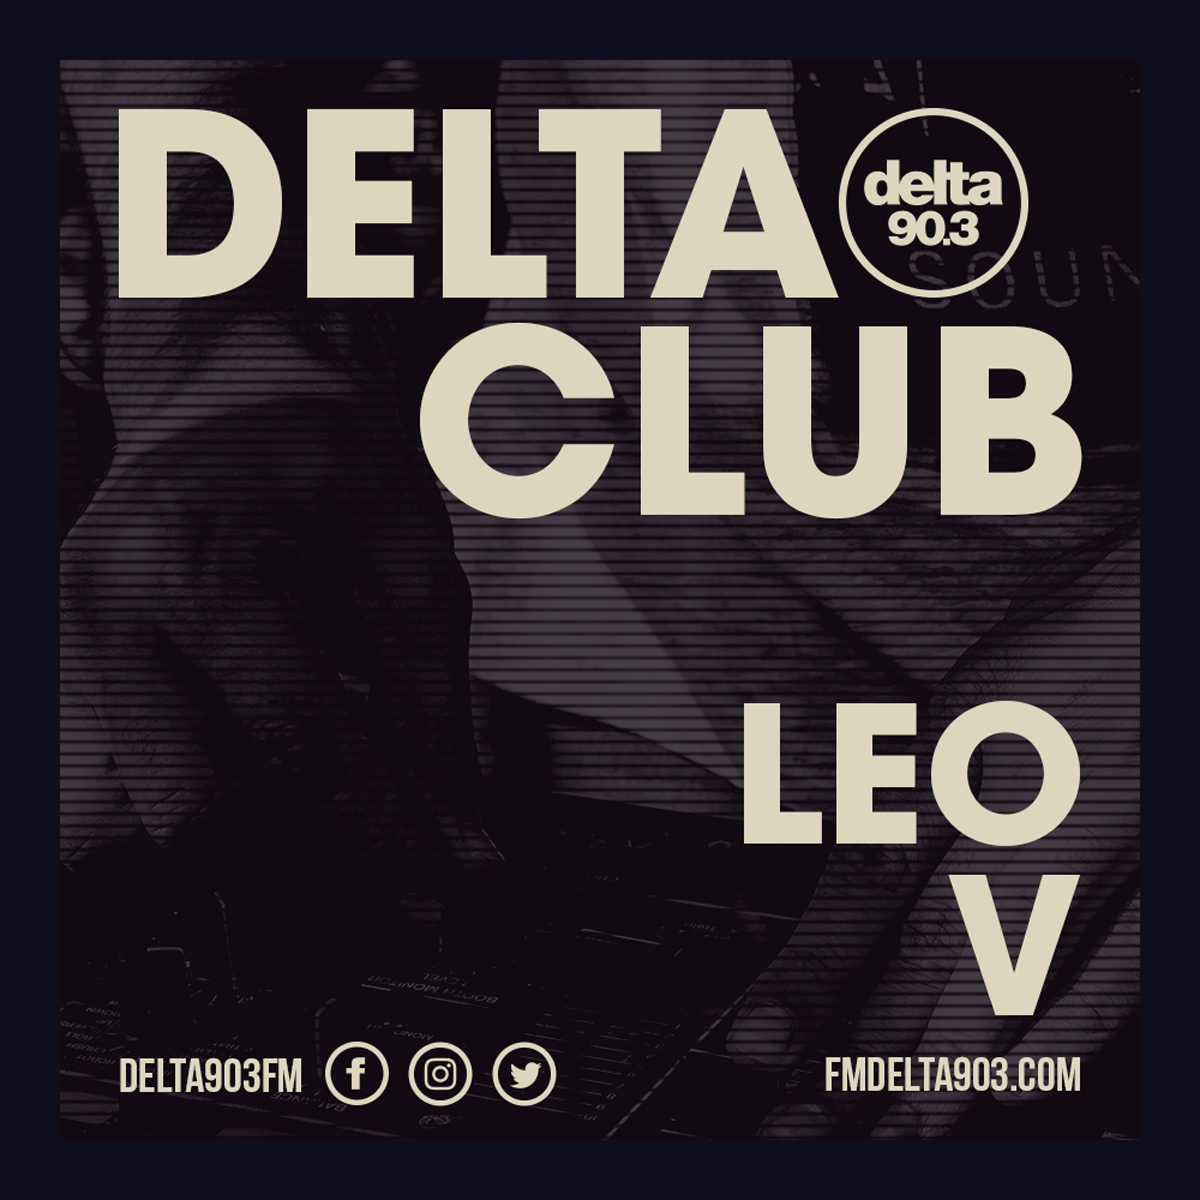 Delta Podcasts - Delta Club presents Leo V (04.07.2018)